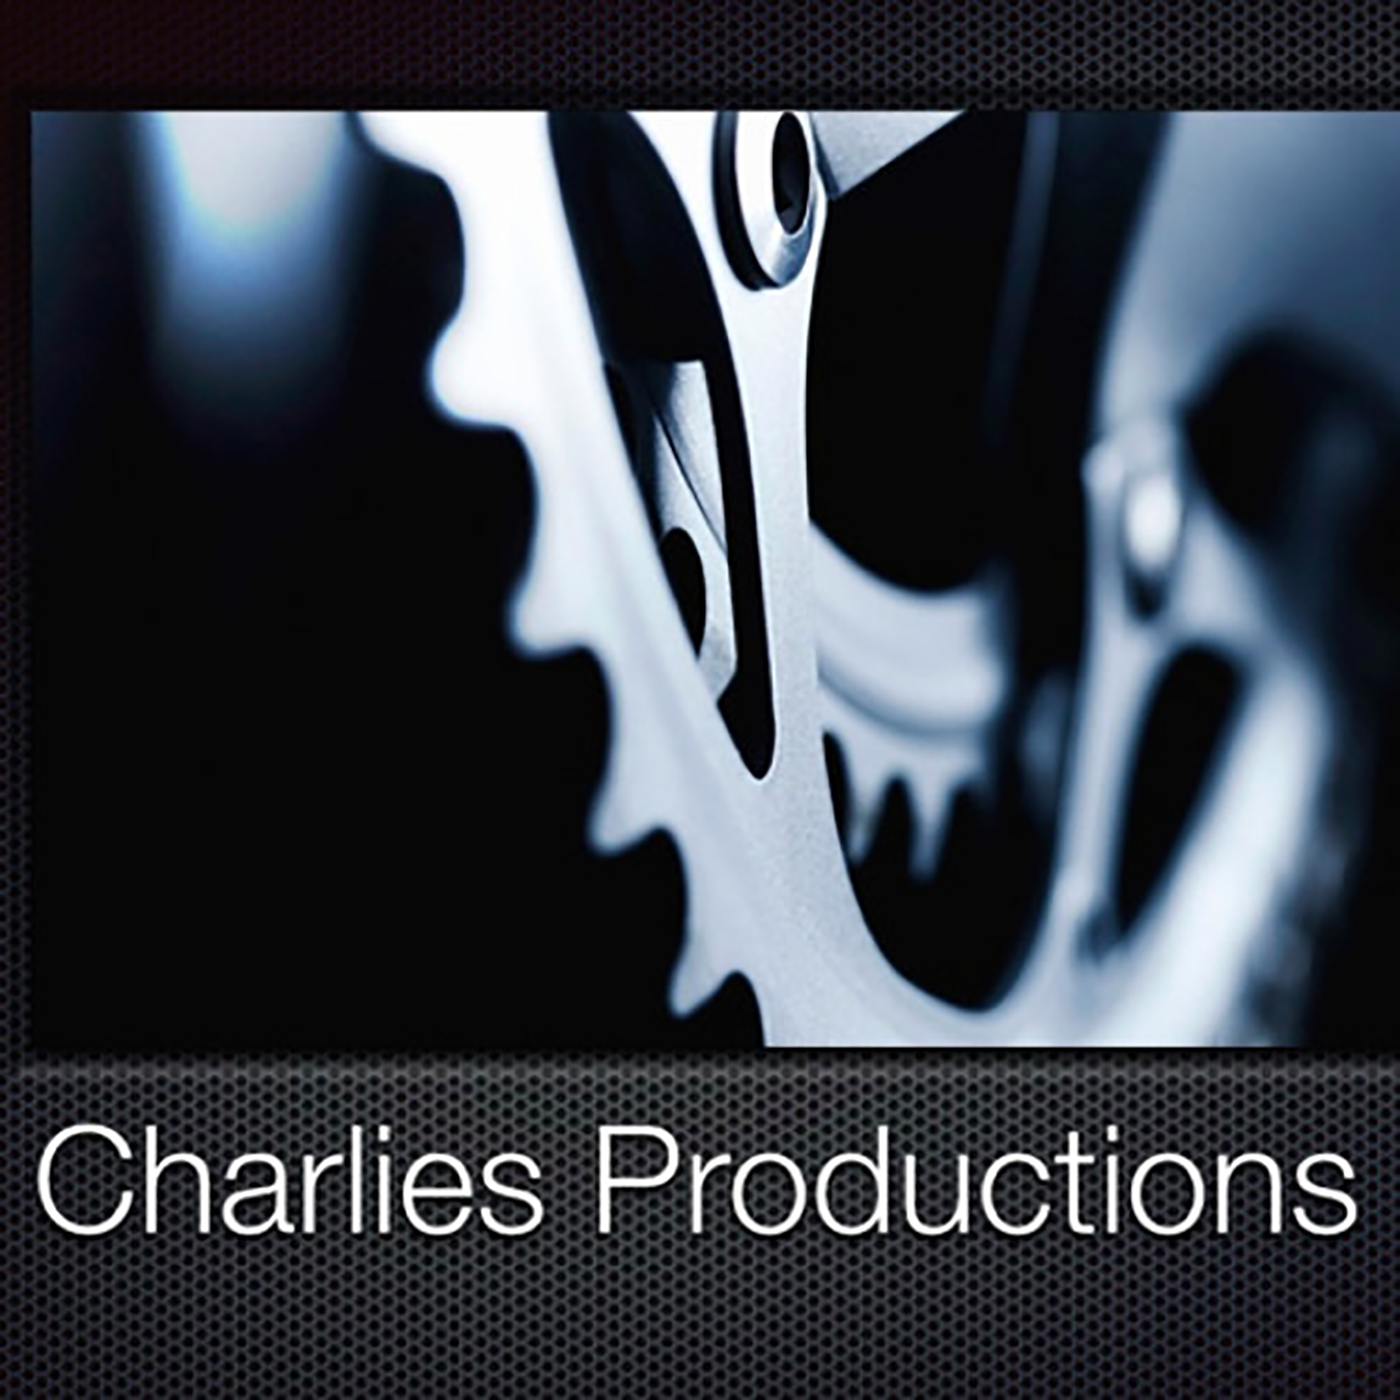 Charlies Productions